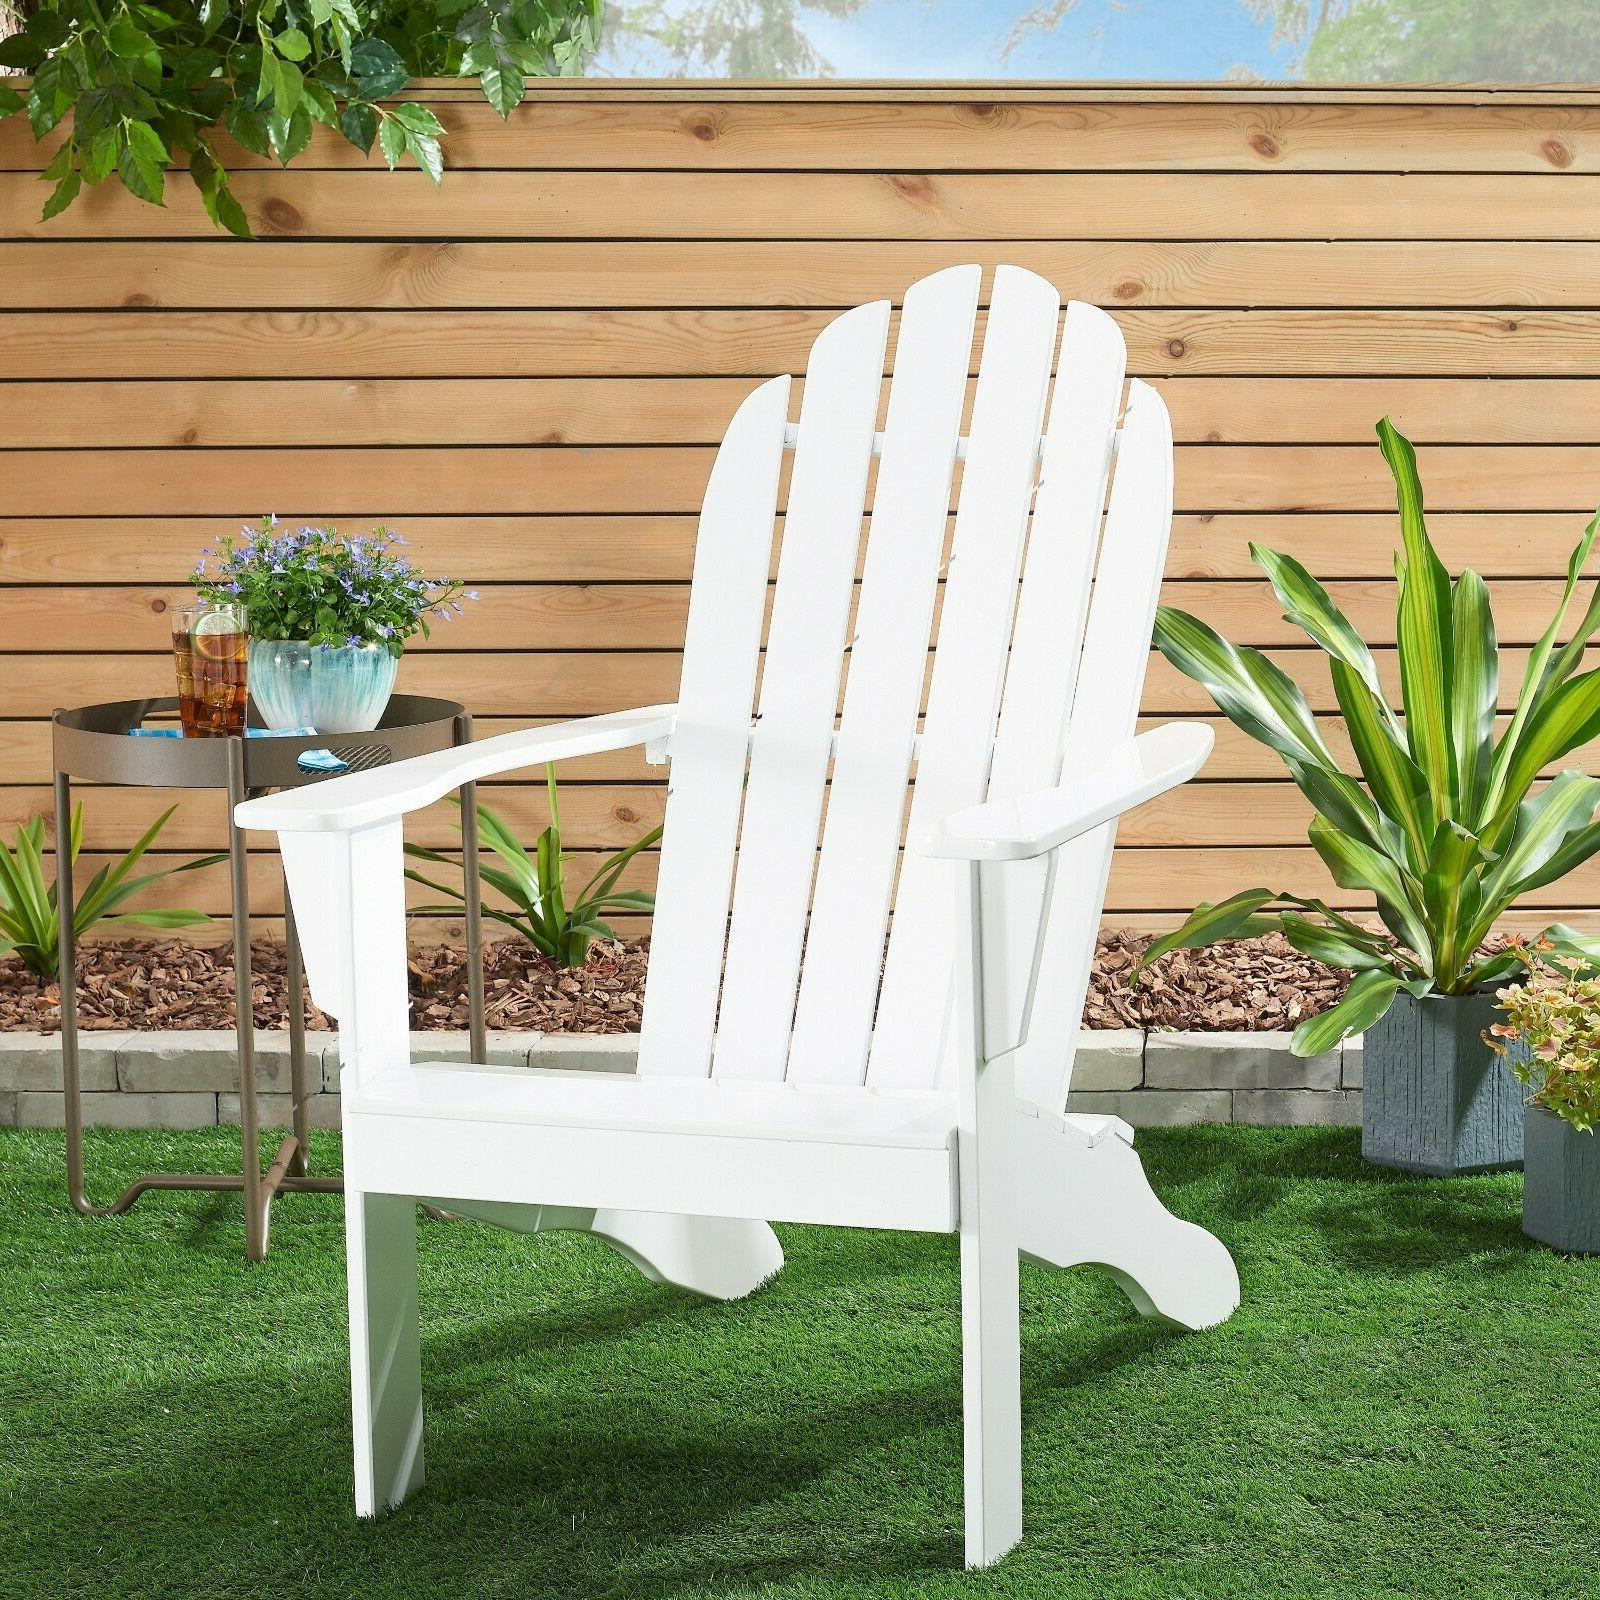 Mainstays Outdoor Wood Chair, High-Quality